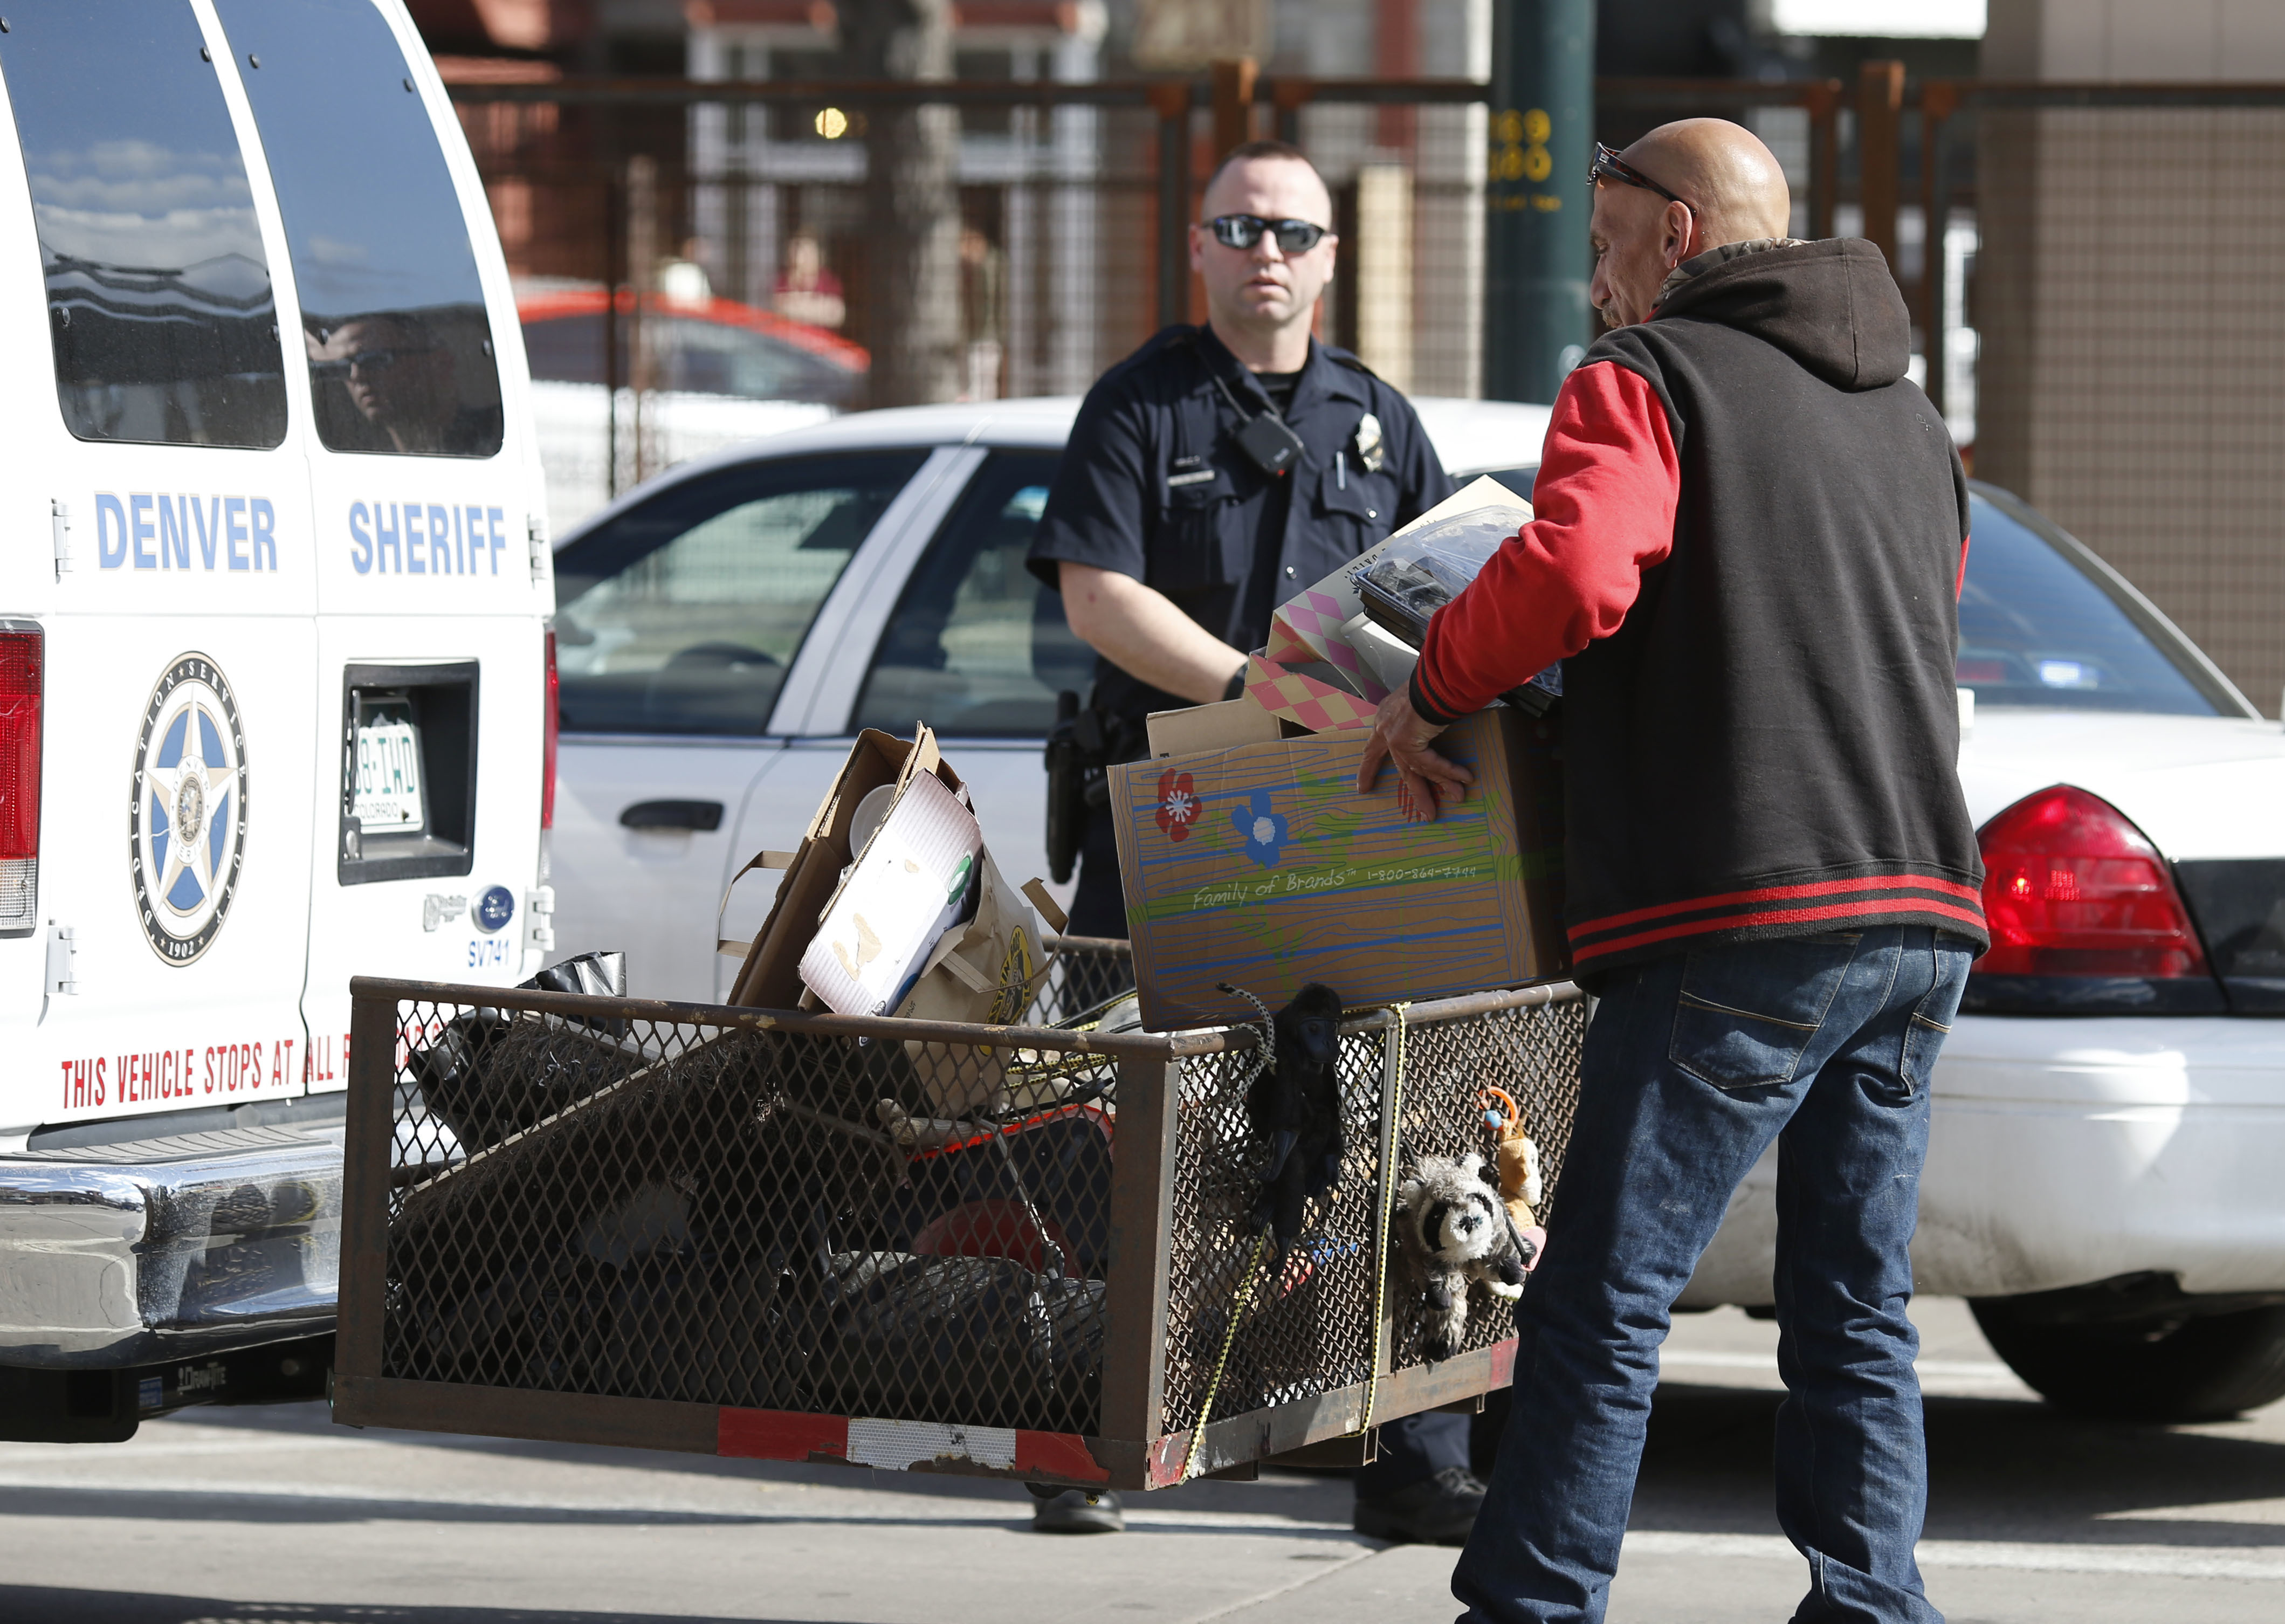 Photo: Homeless sweep downtown Denver March 2016 (AP Photo)